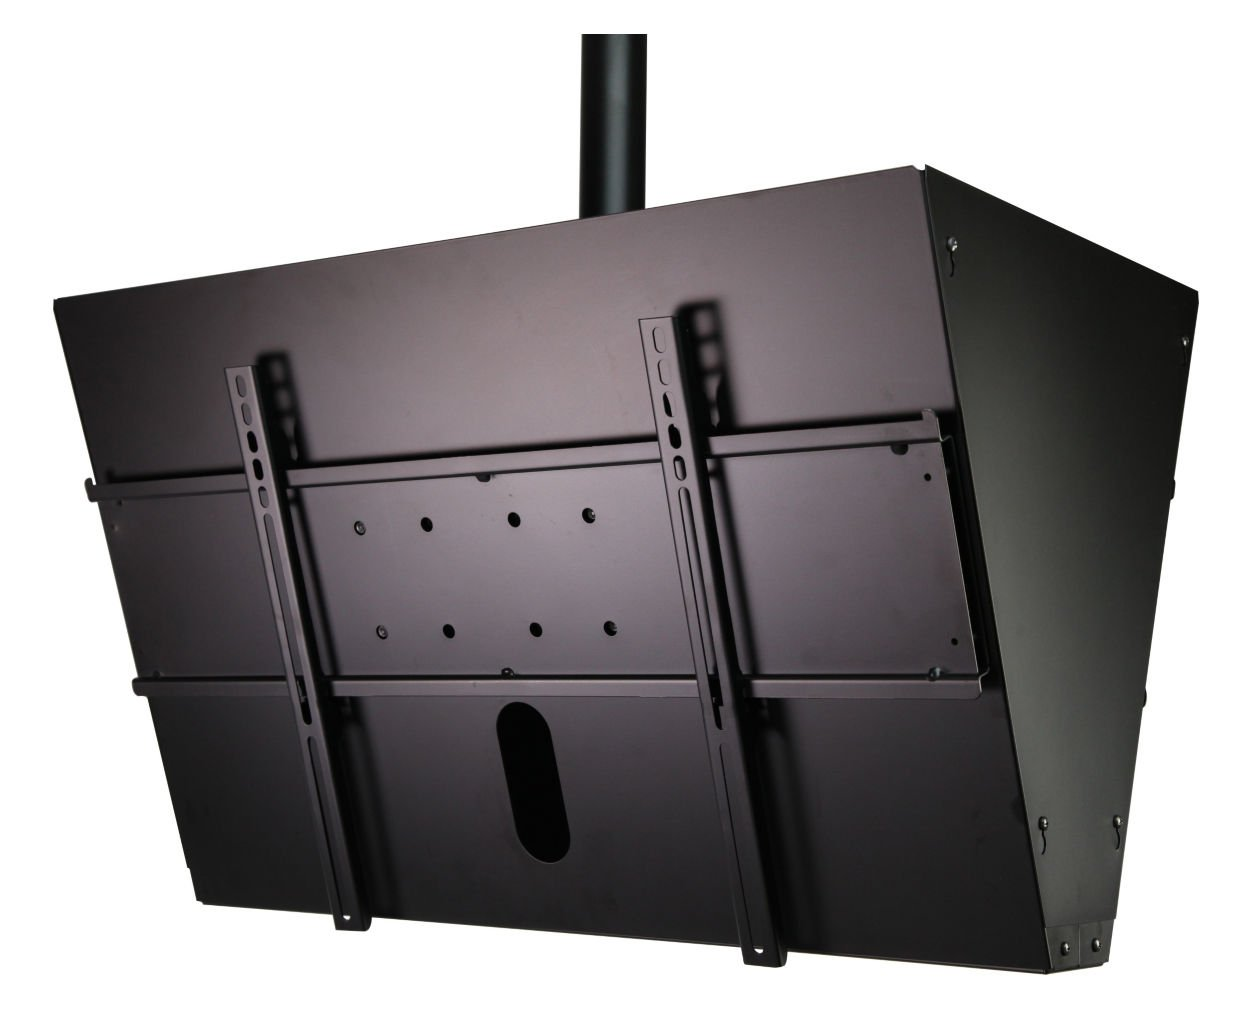 Back to Back Ceiling Mount with Media Player Storage